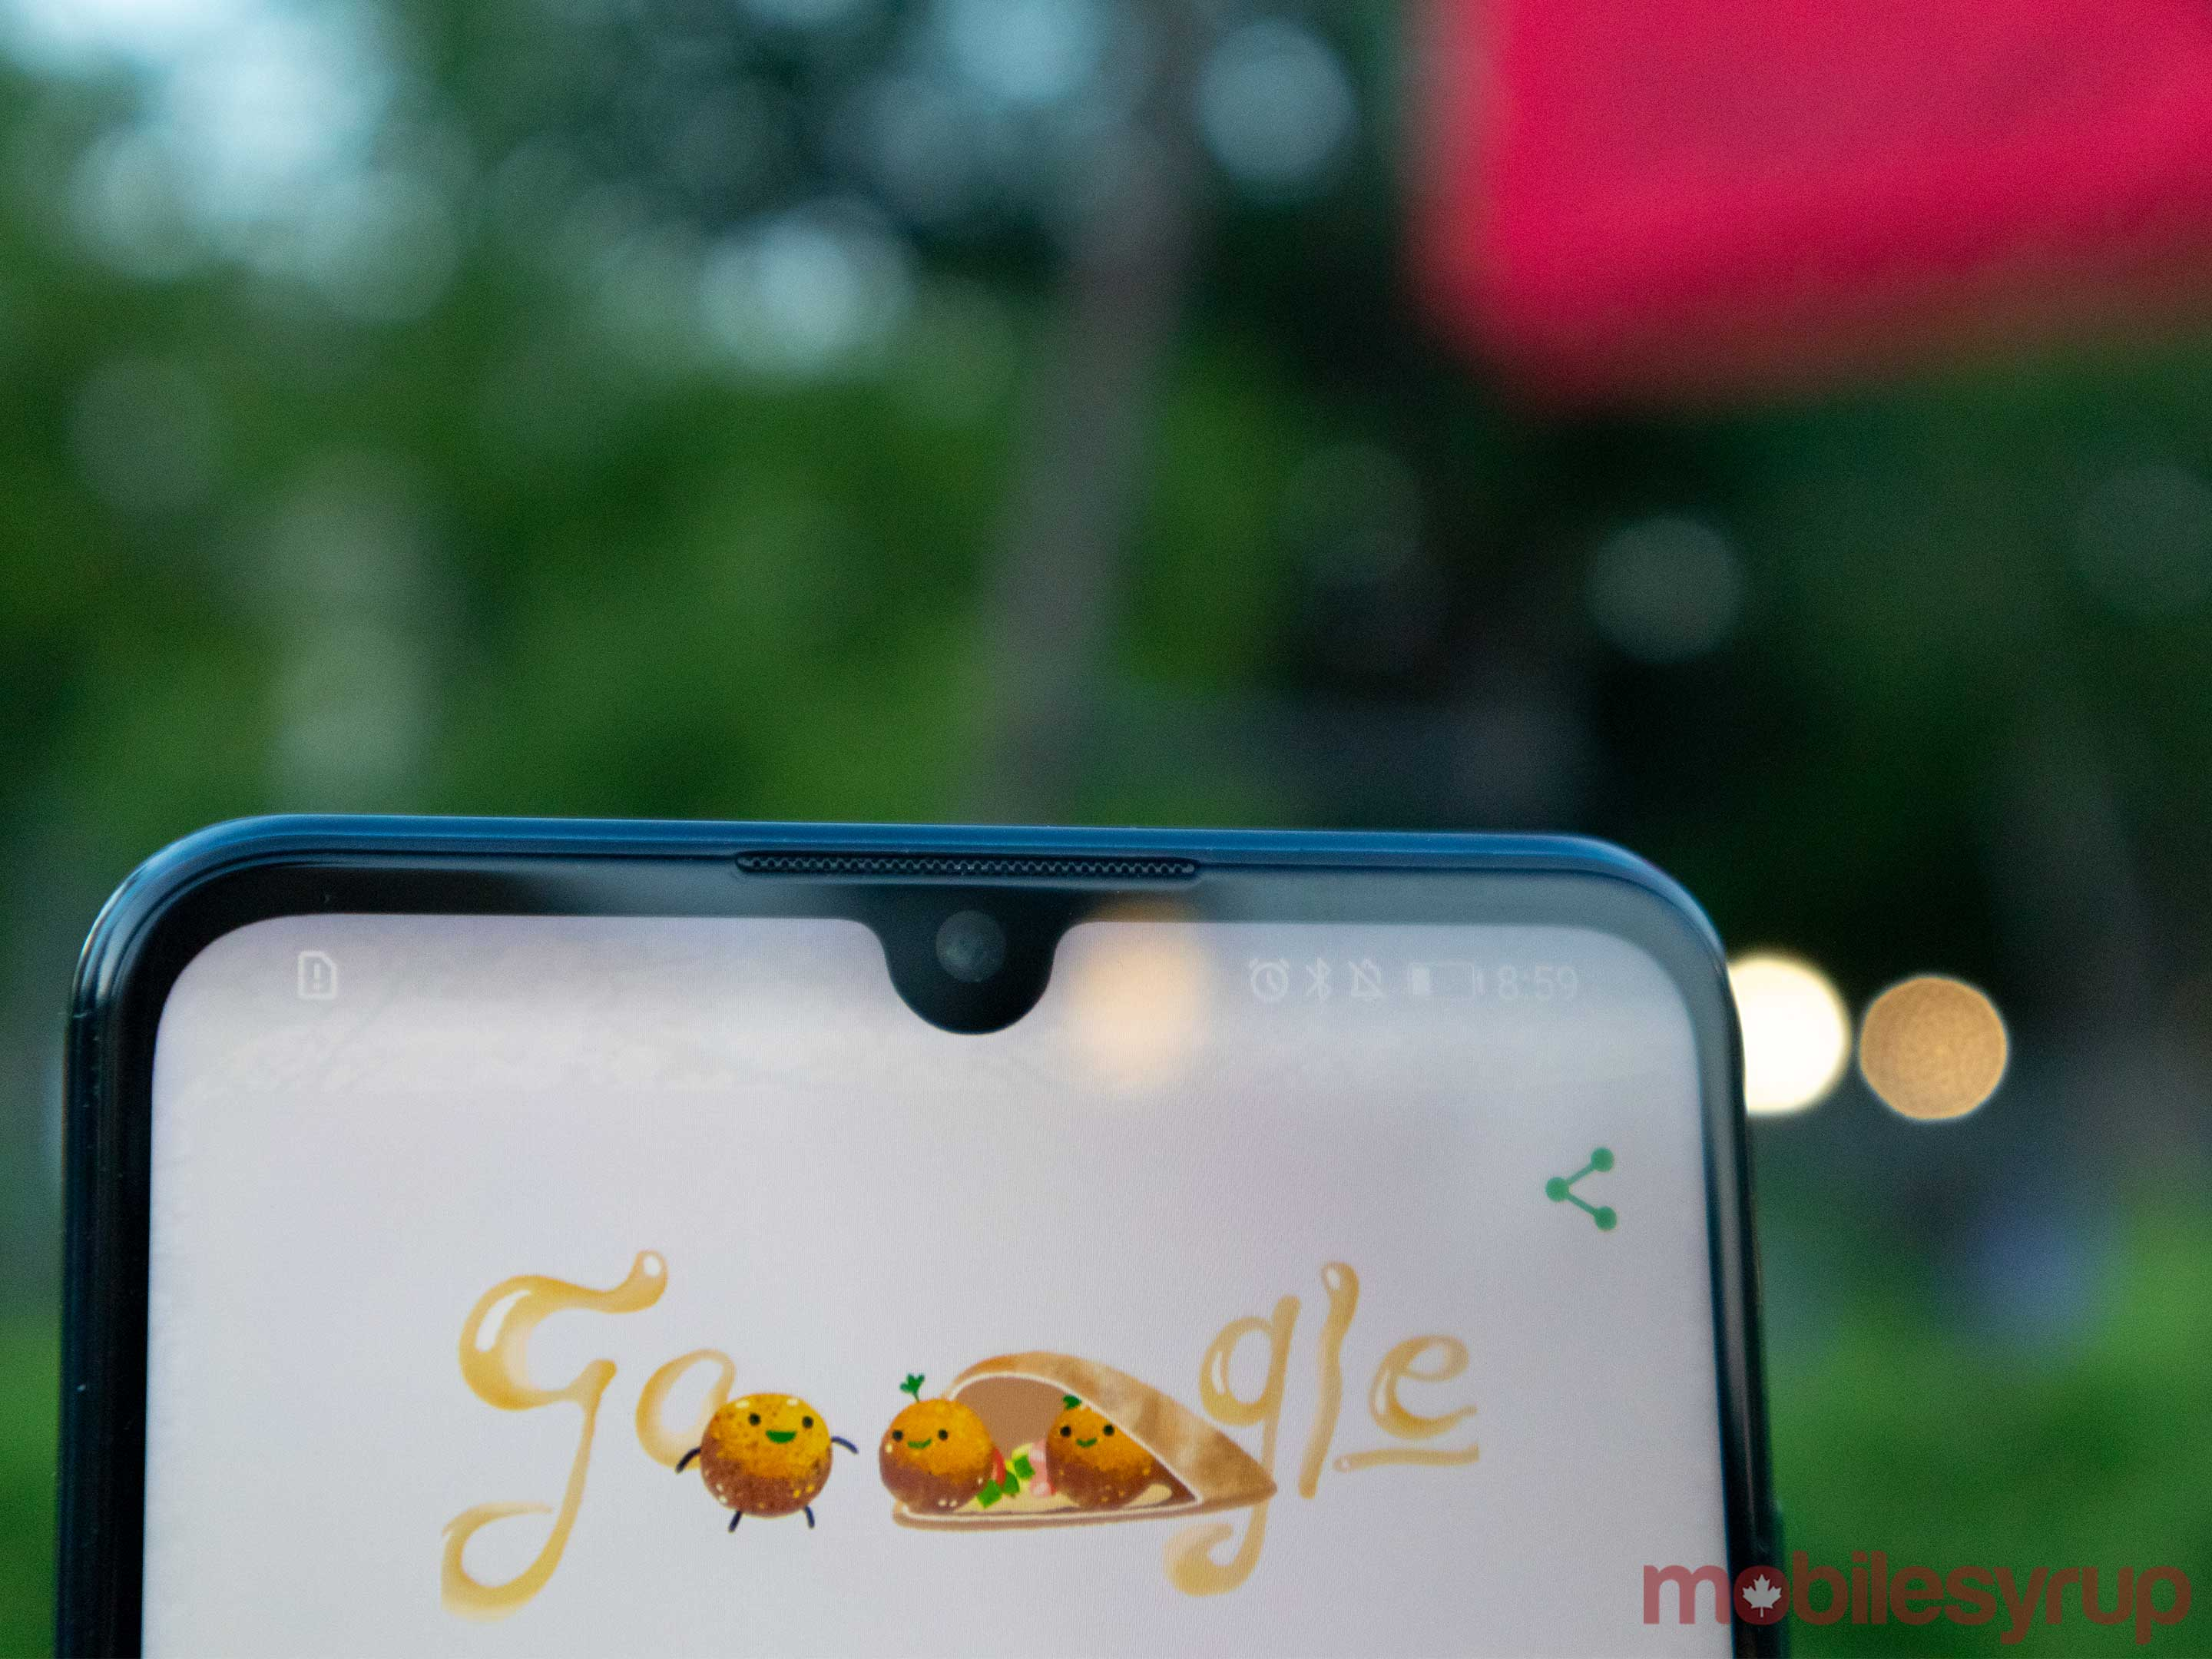 Huawei P30 Lite Review: A phone of few issues